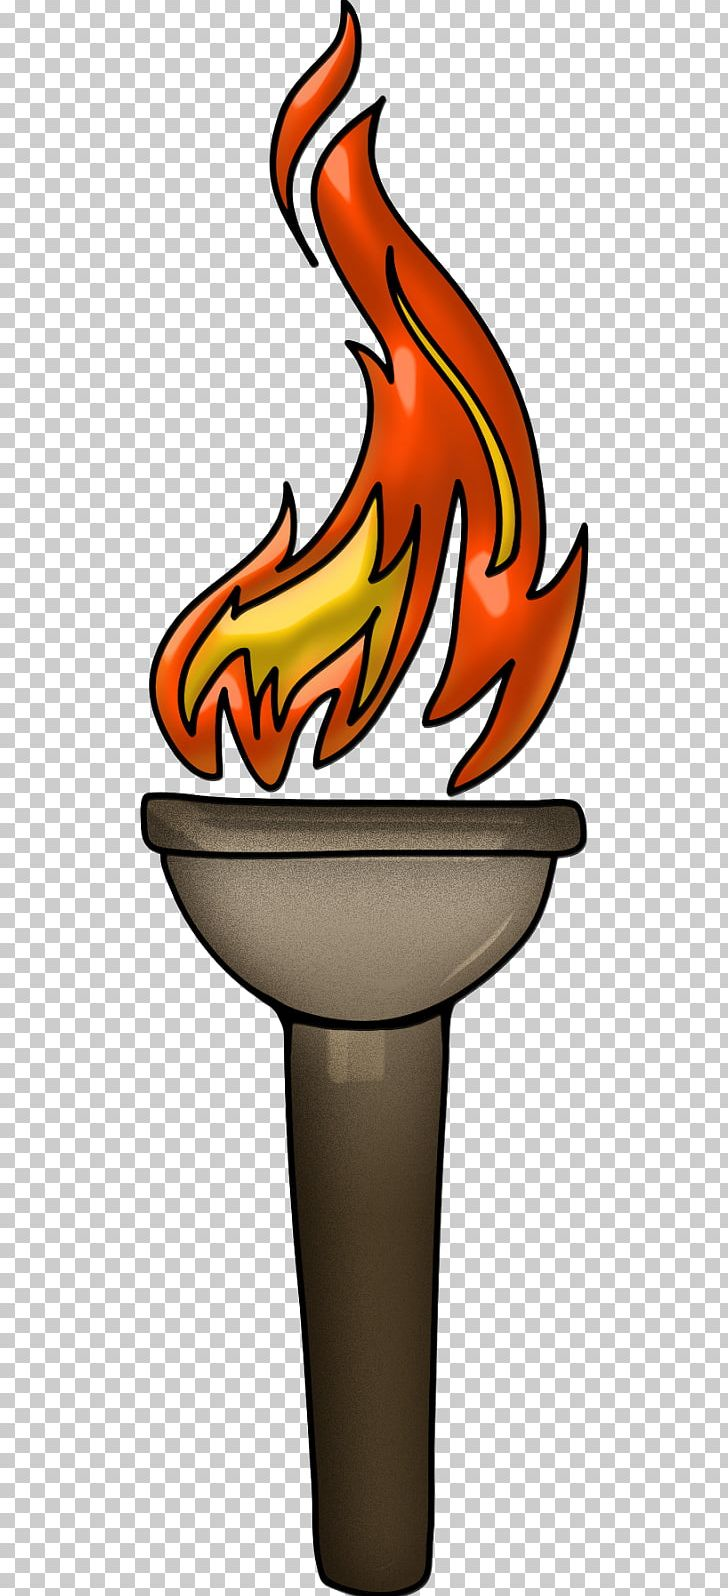 medium resolution of olympic games 2018 winter olympics torch relay png clipart 2018 winter olympics 2018 winter olympics torch